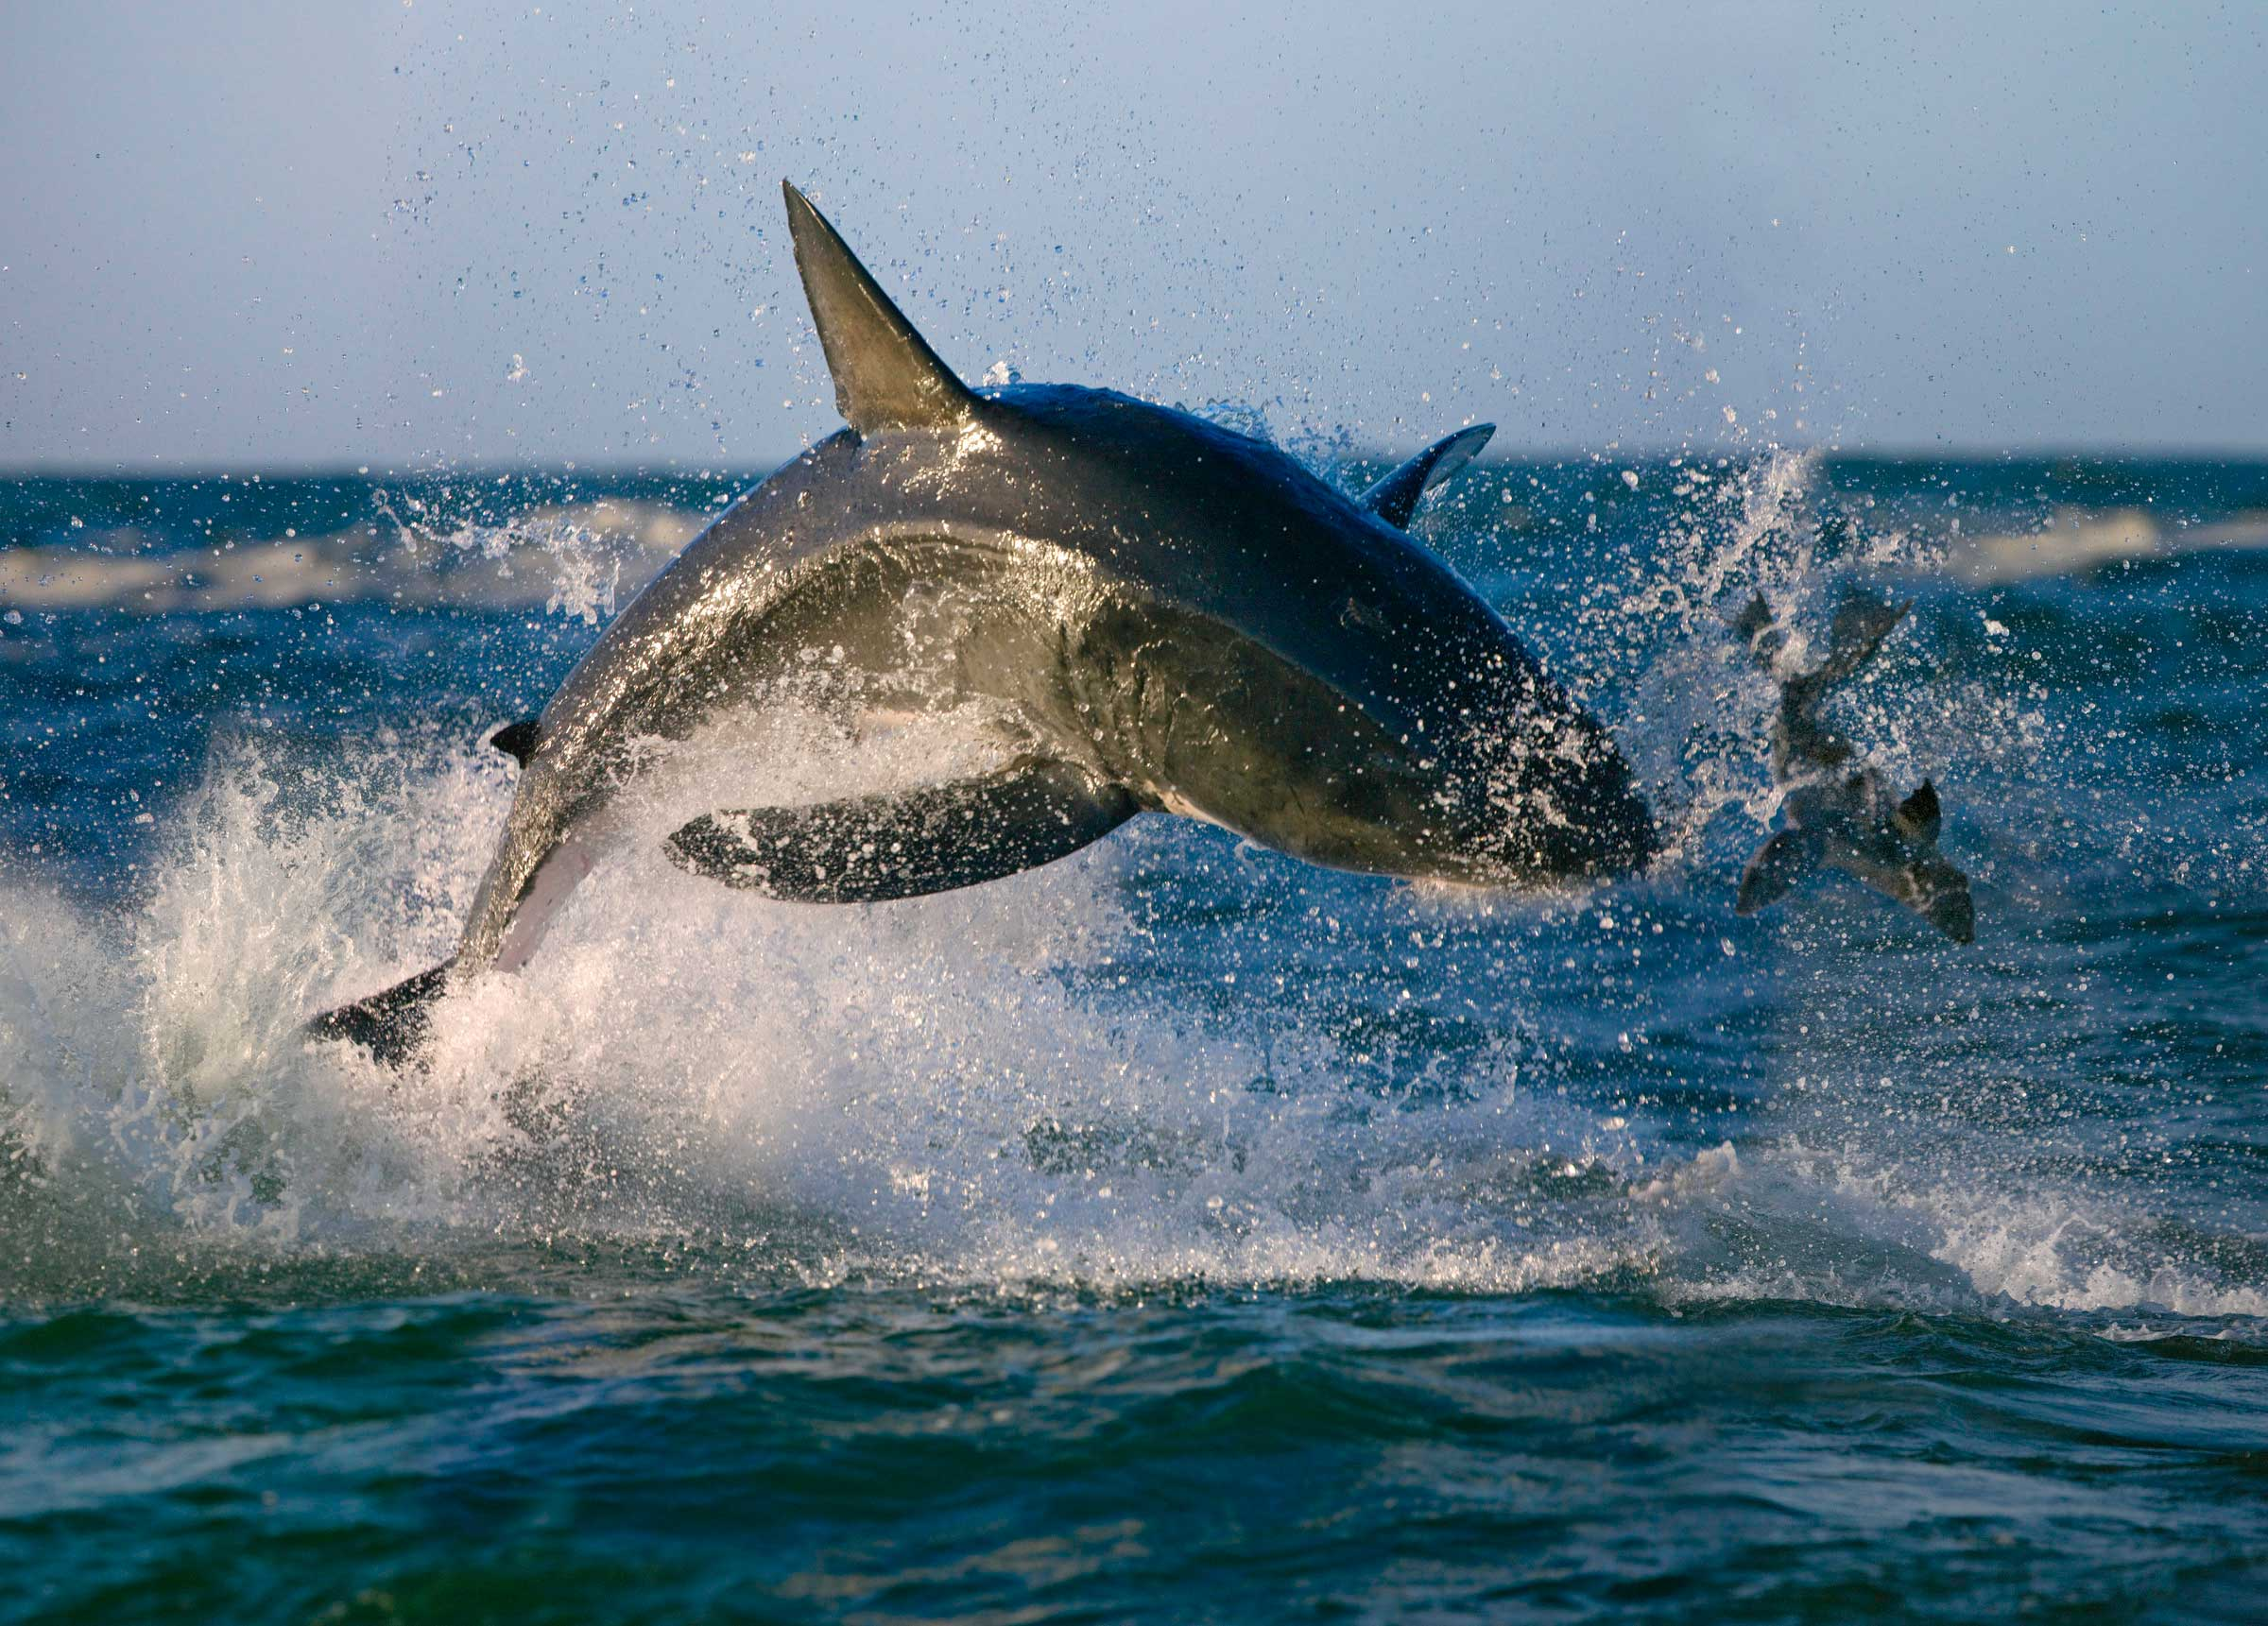 Shark chasing seal